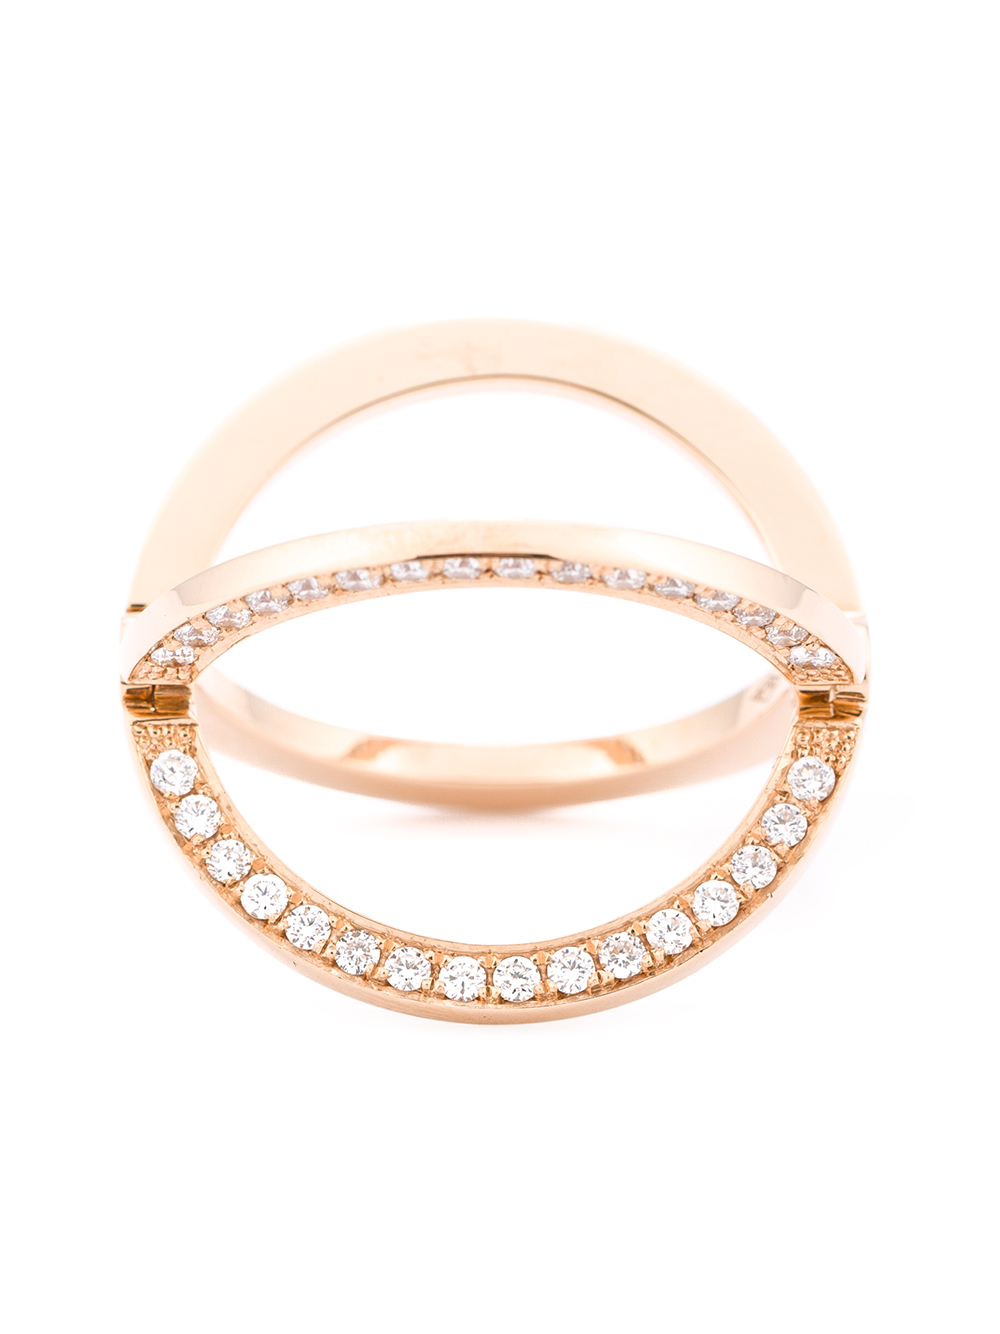 Kim Mee Hye Twisted Gold and Diamond Ring - Pink & Purple 4sVn3i7D